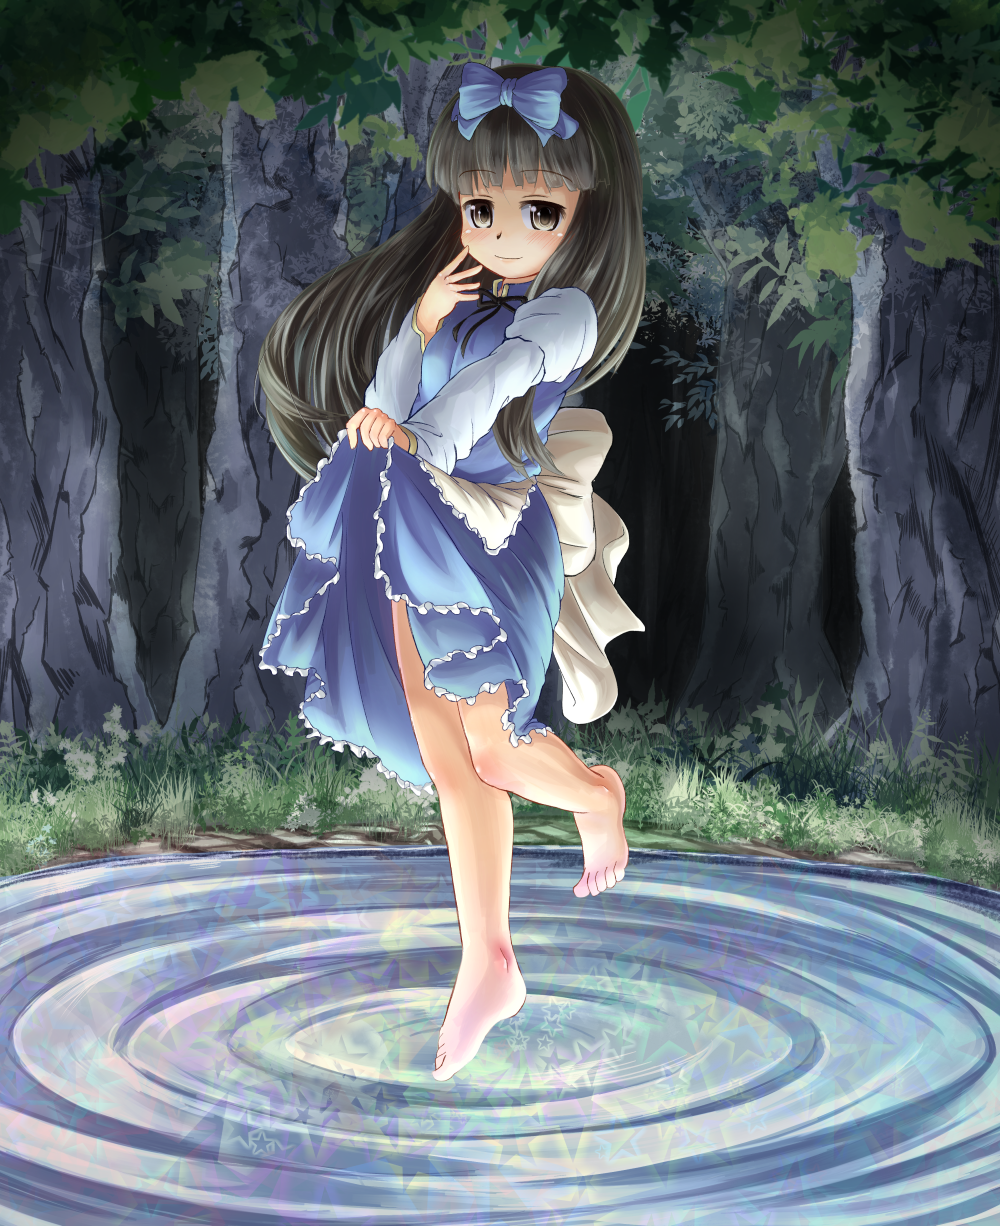 adworse apron barefoot black_hair bow dress dress_lift hair_bow highres long_hair night ribbon skirt_hold smile solo standing_on_one_leg standing_on_water star_sapphire touhou tree water yellow_eyes